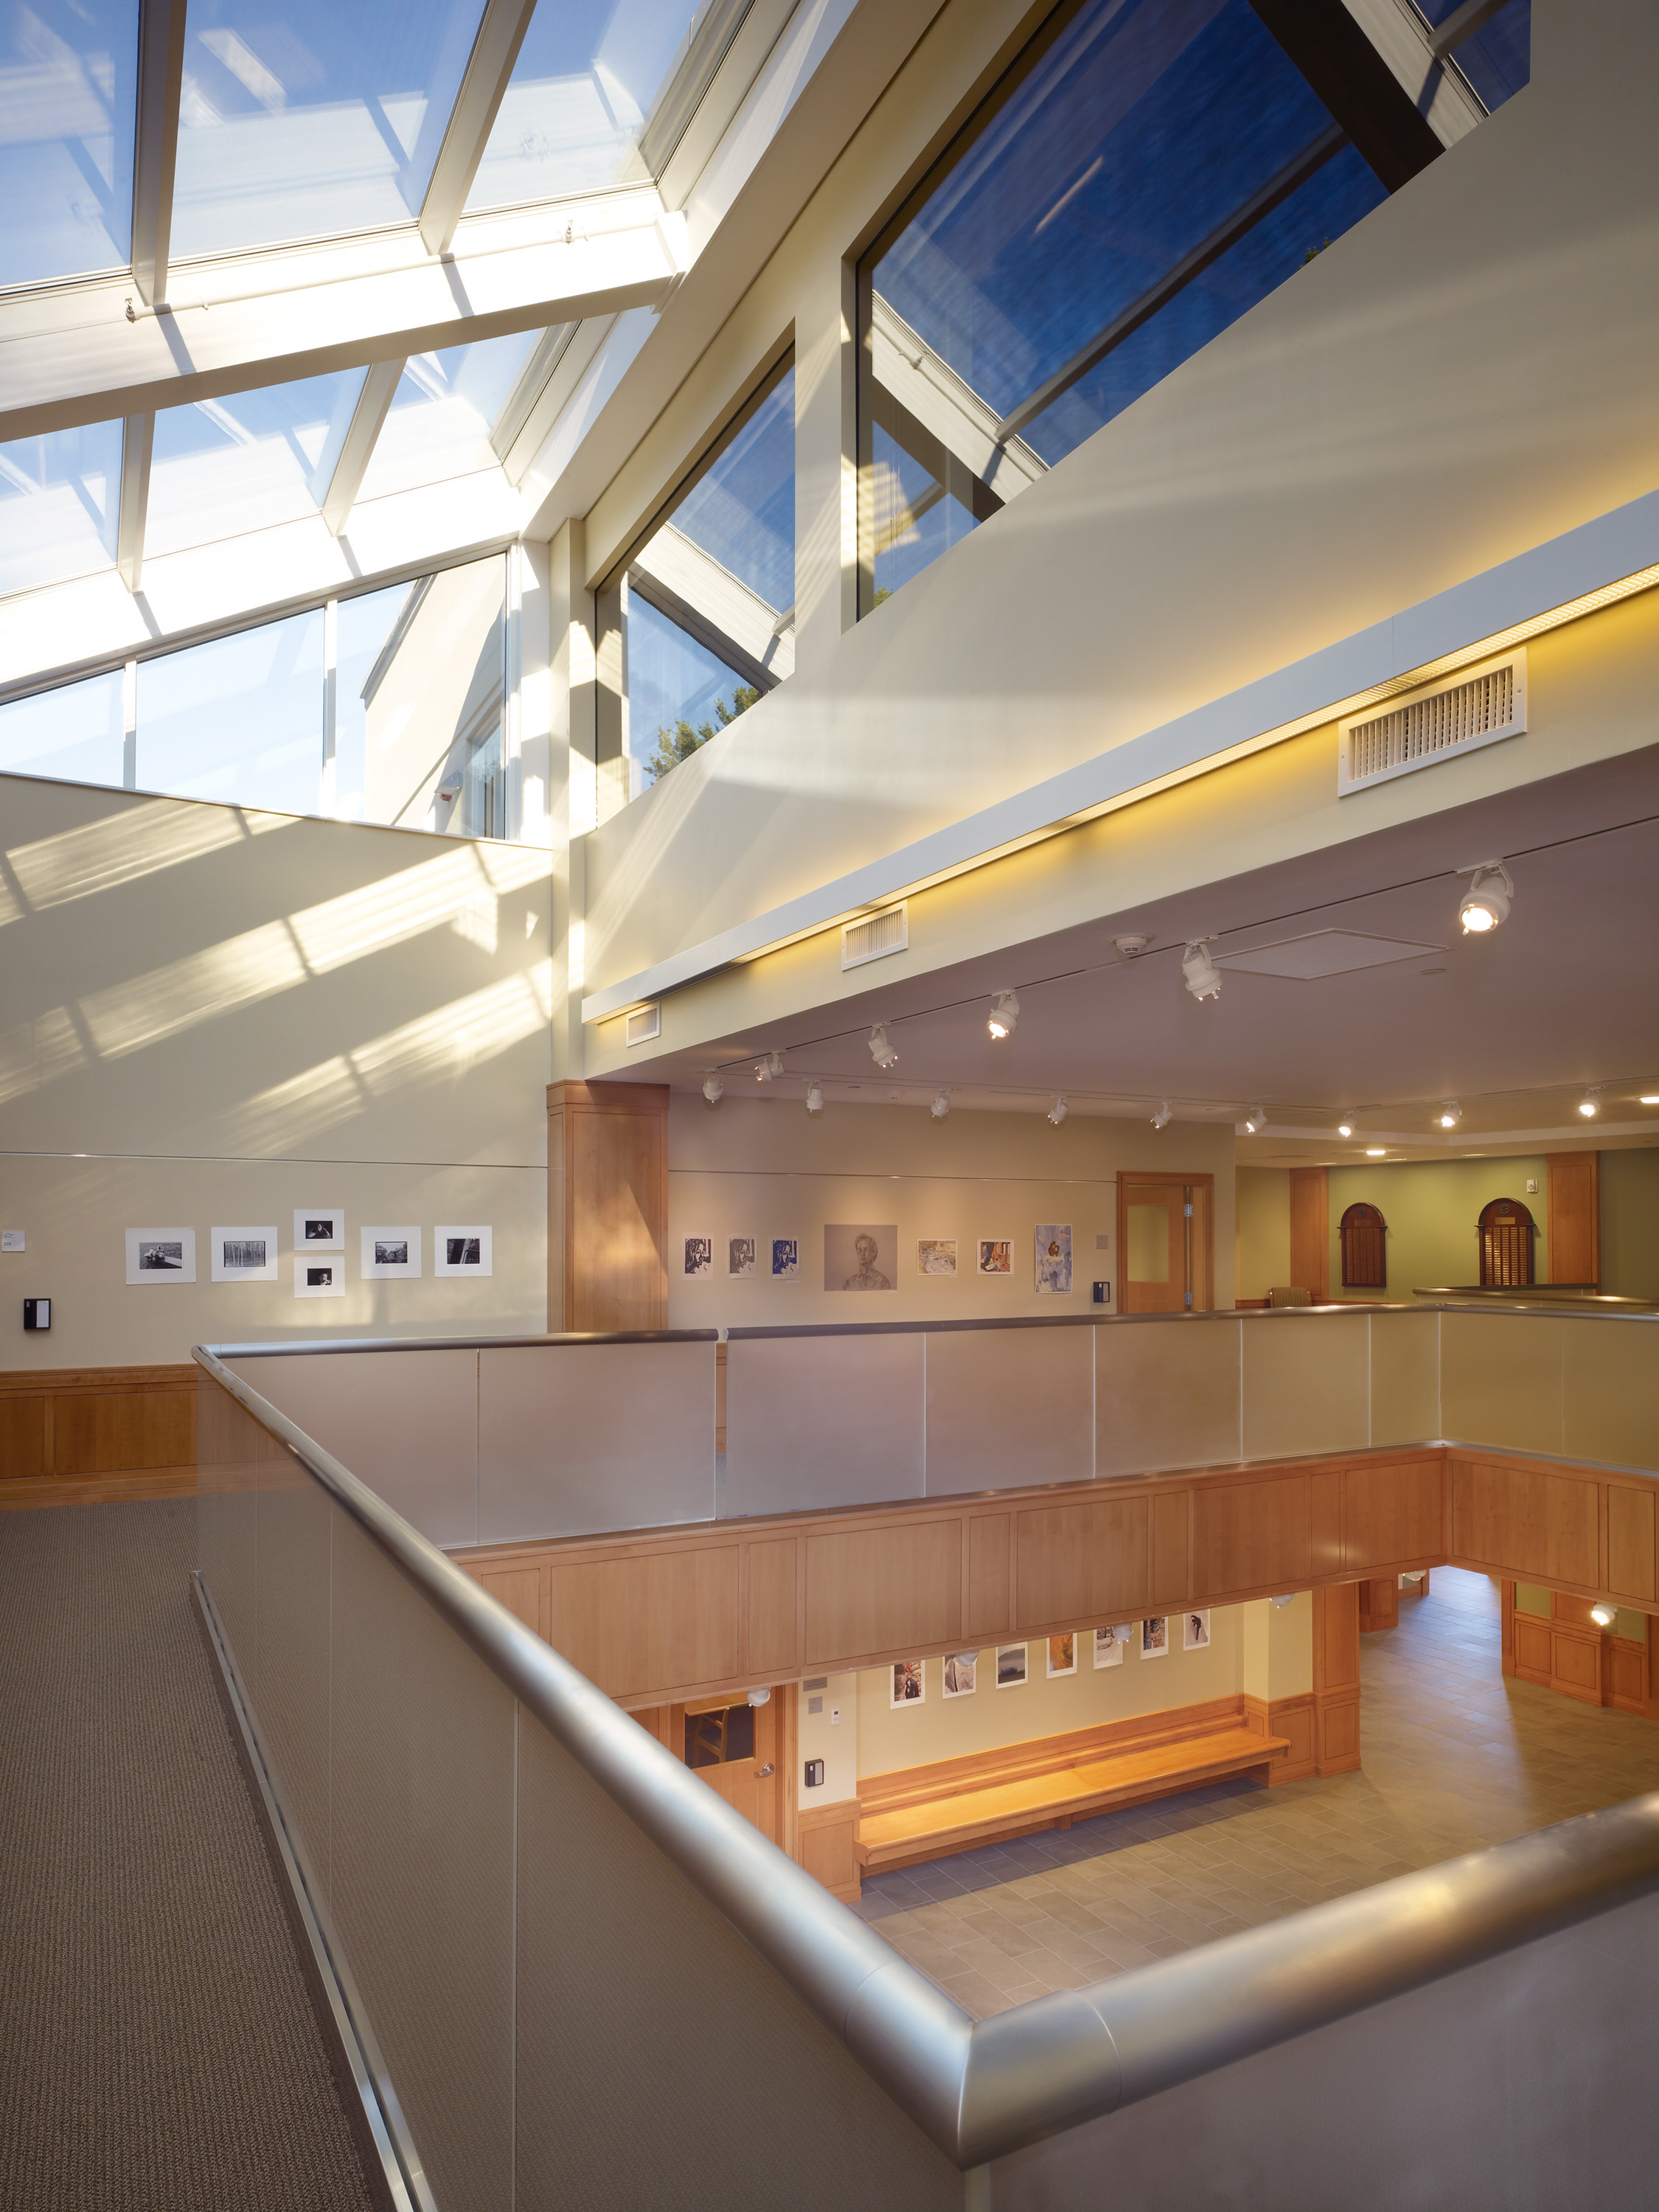 The second floor of the building, this photo shows the massive skylight that takes up almost the entire ceiling. On the floor, a large white railing runs around an opening in the floor looking into the ground level.